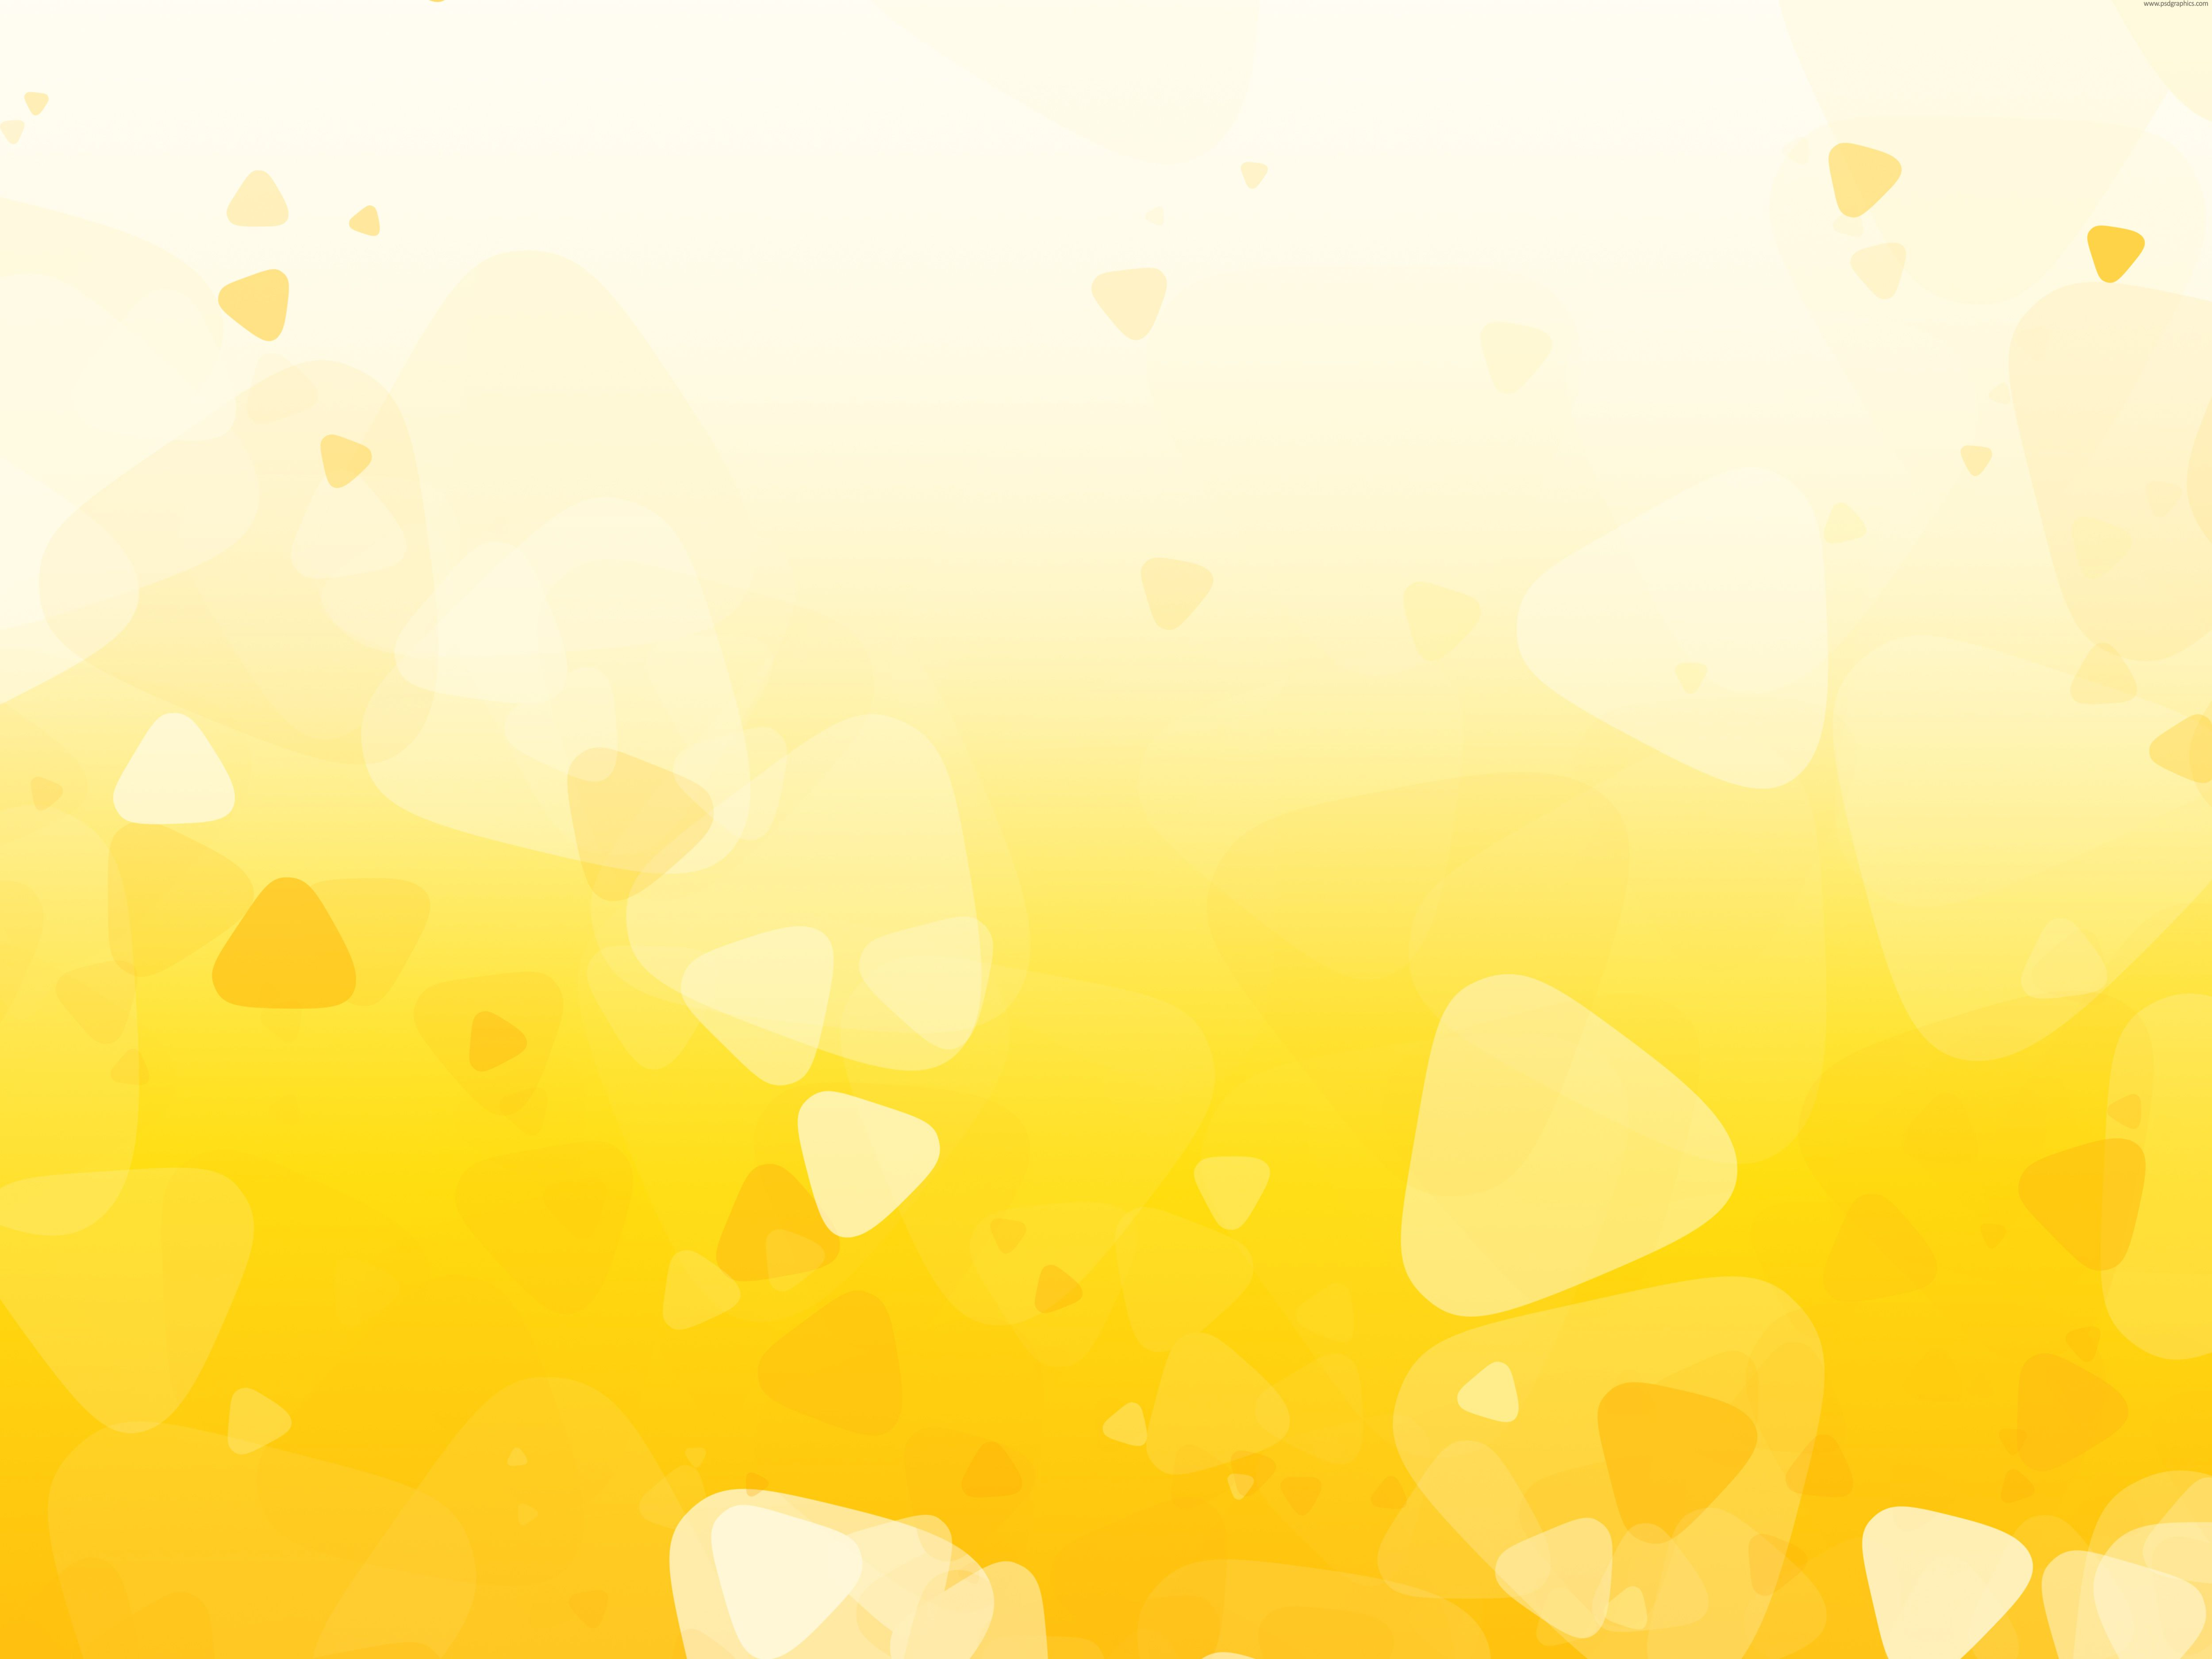 Yellow shapes background. Yellow background, Cute